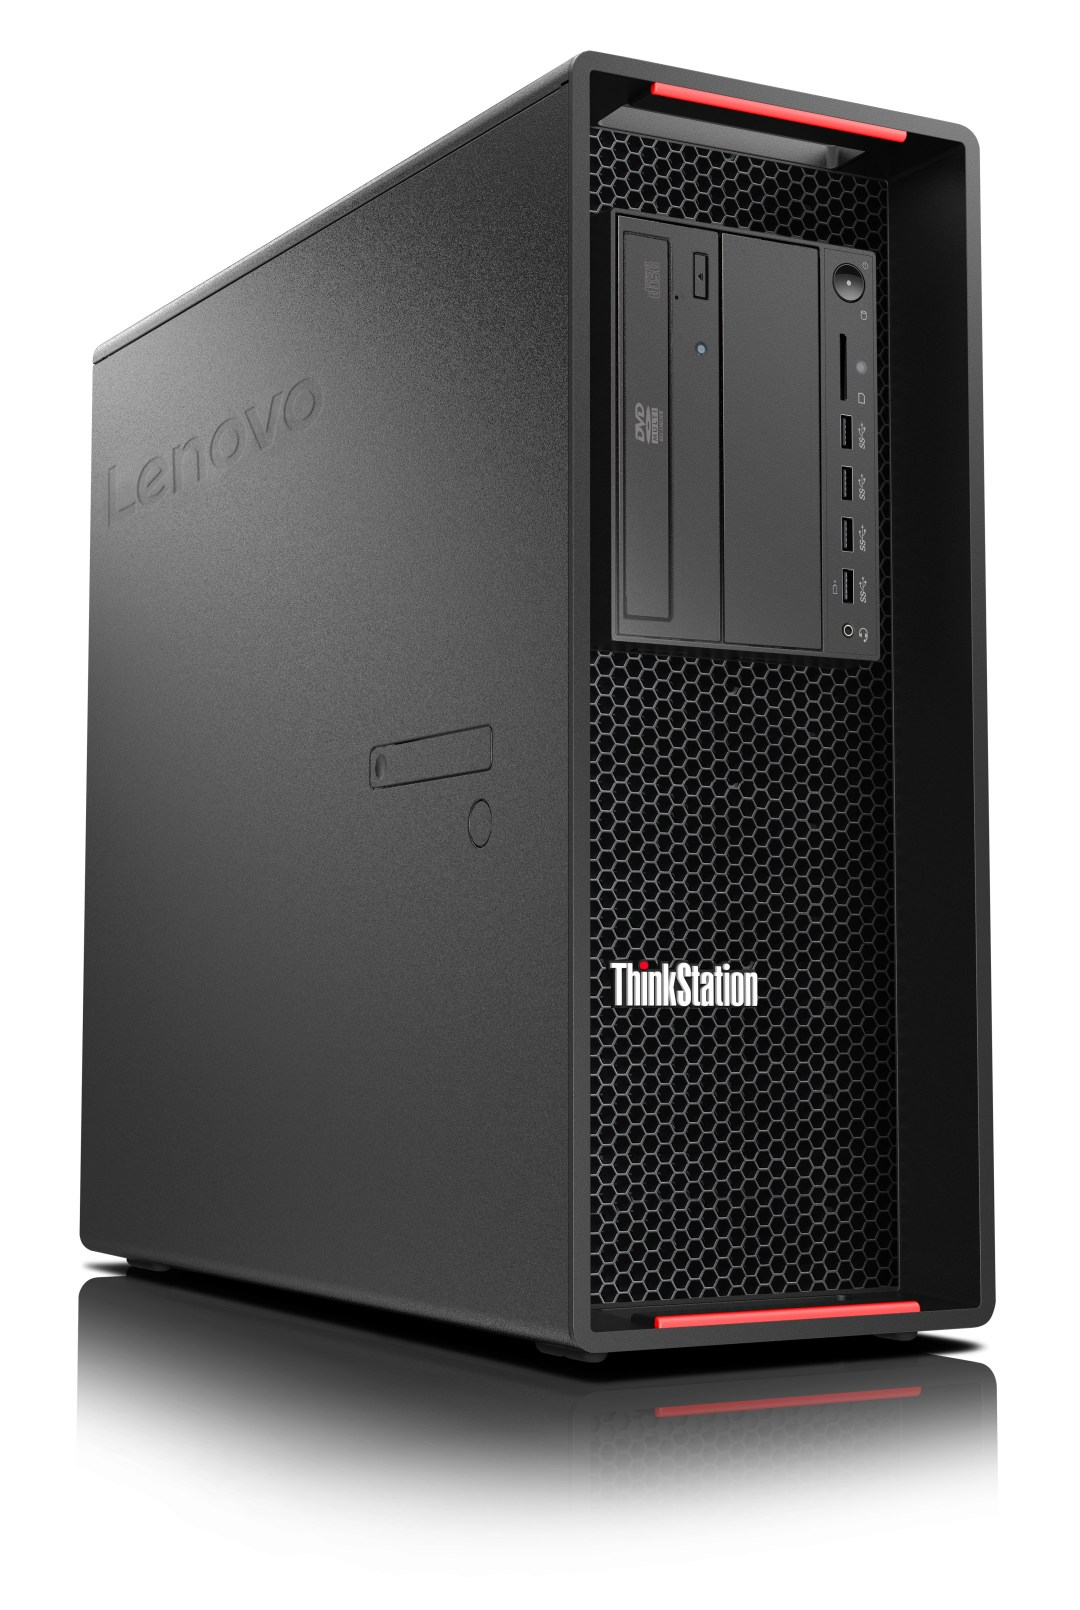 ThinkStation P720 03